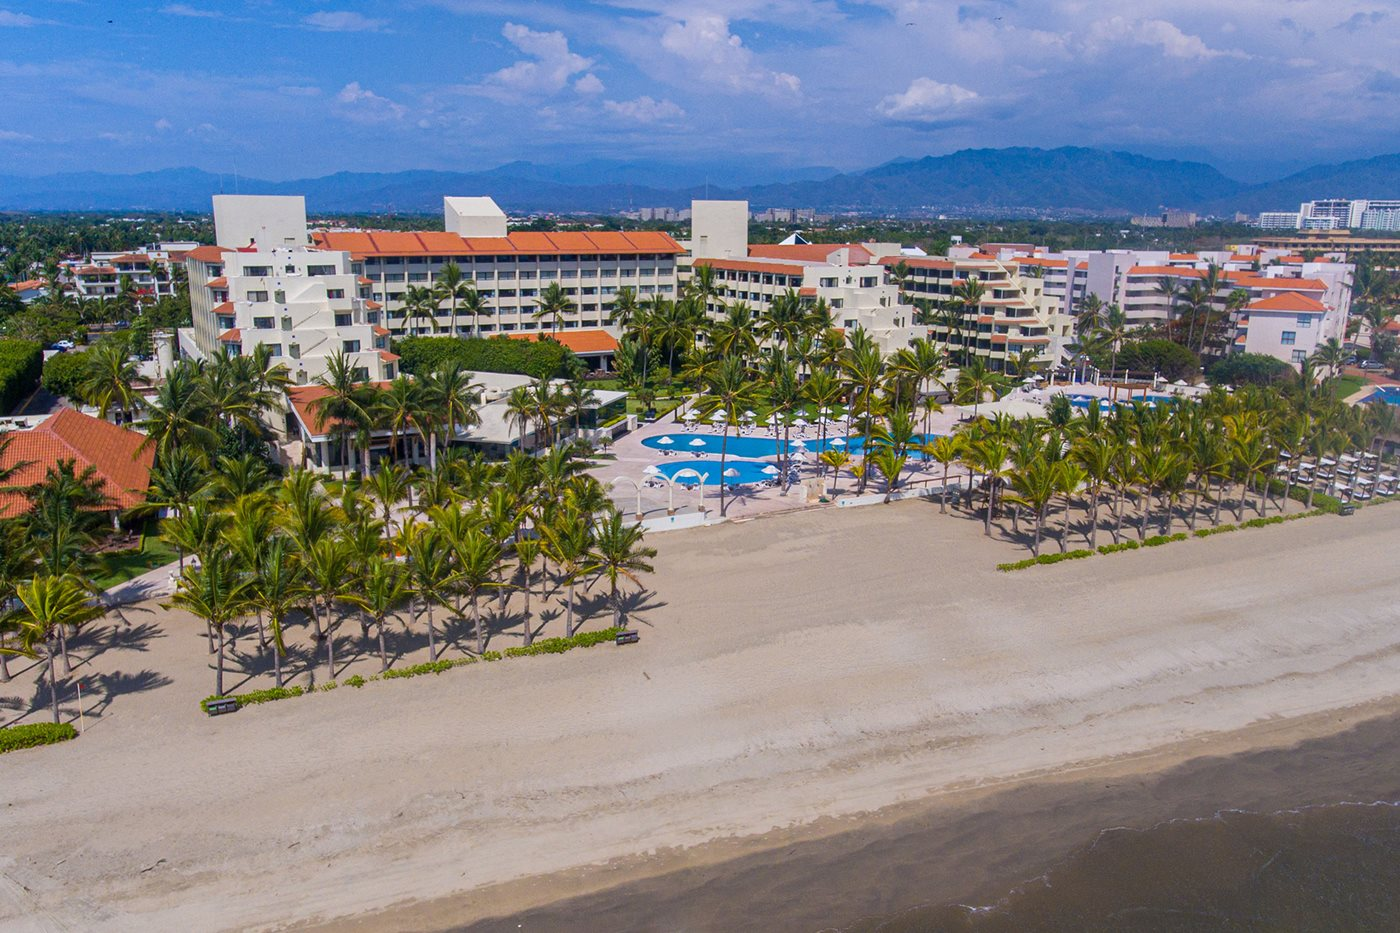 Occidental Nuevo Vallarta Riviera Nayarit Transat